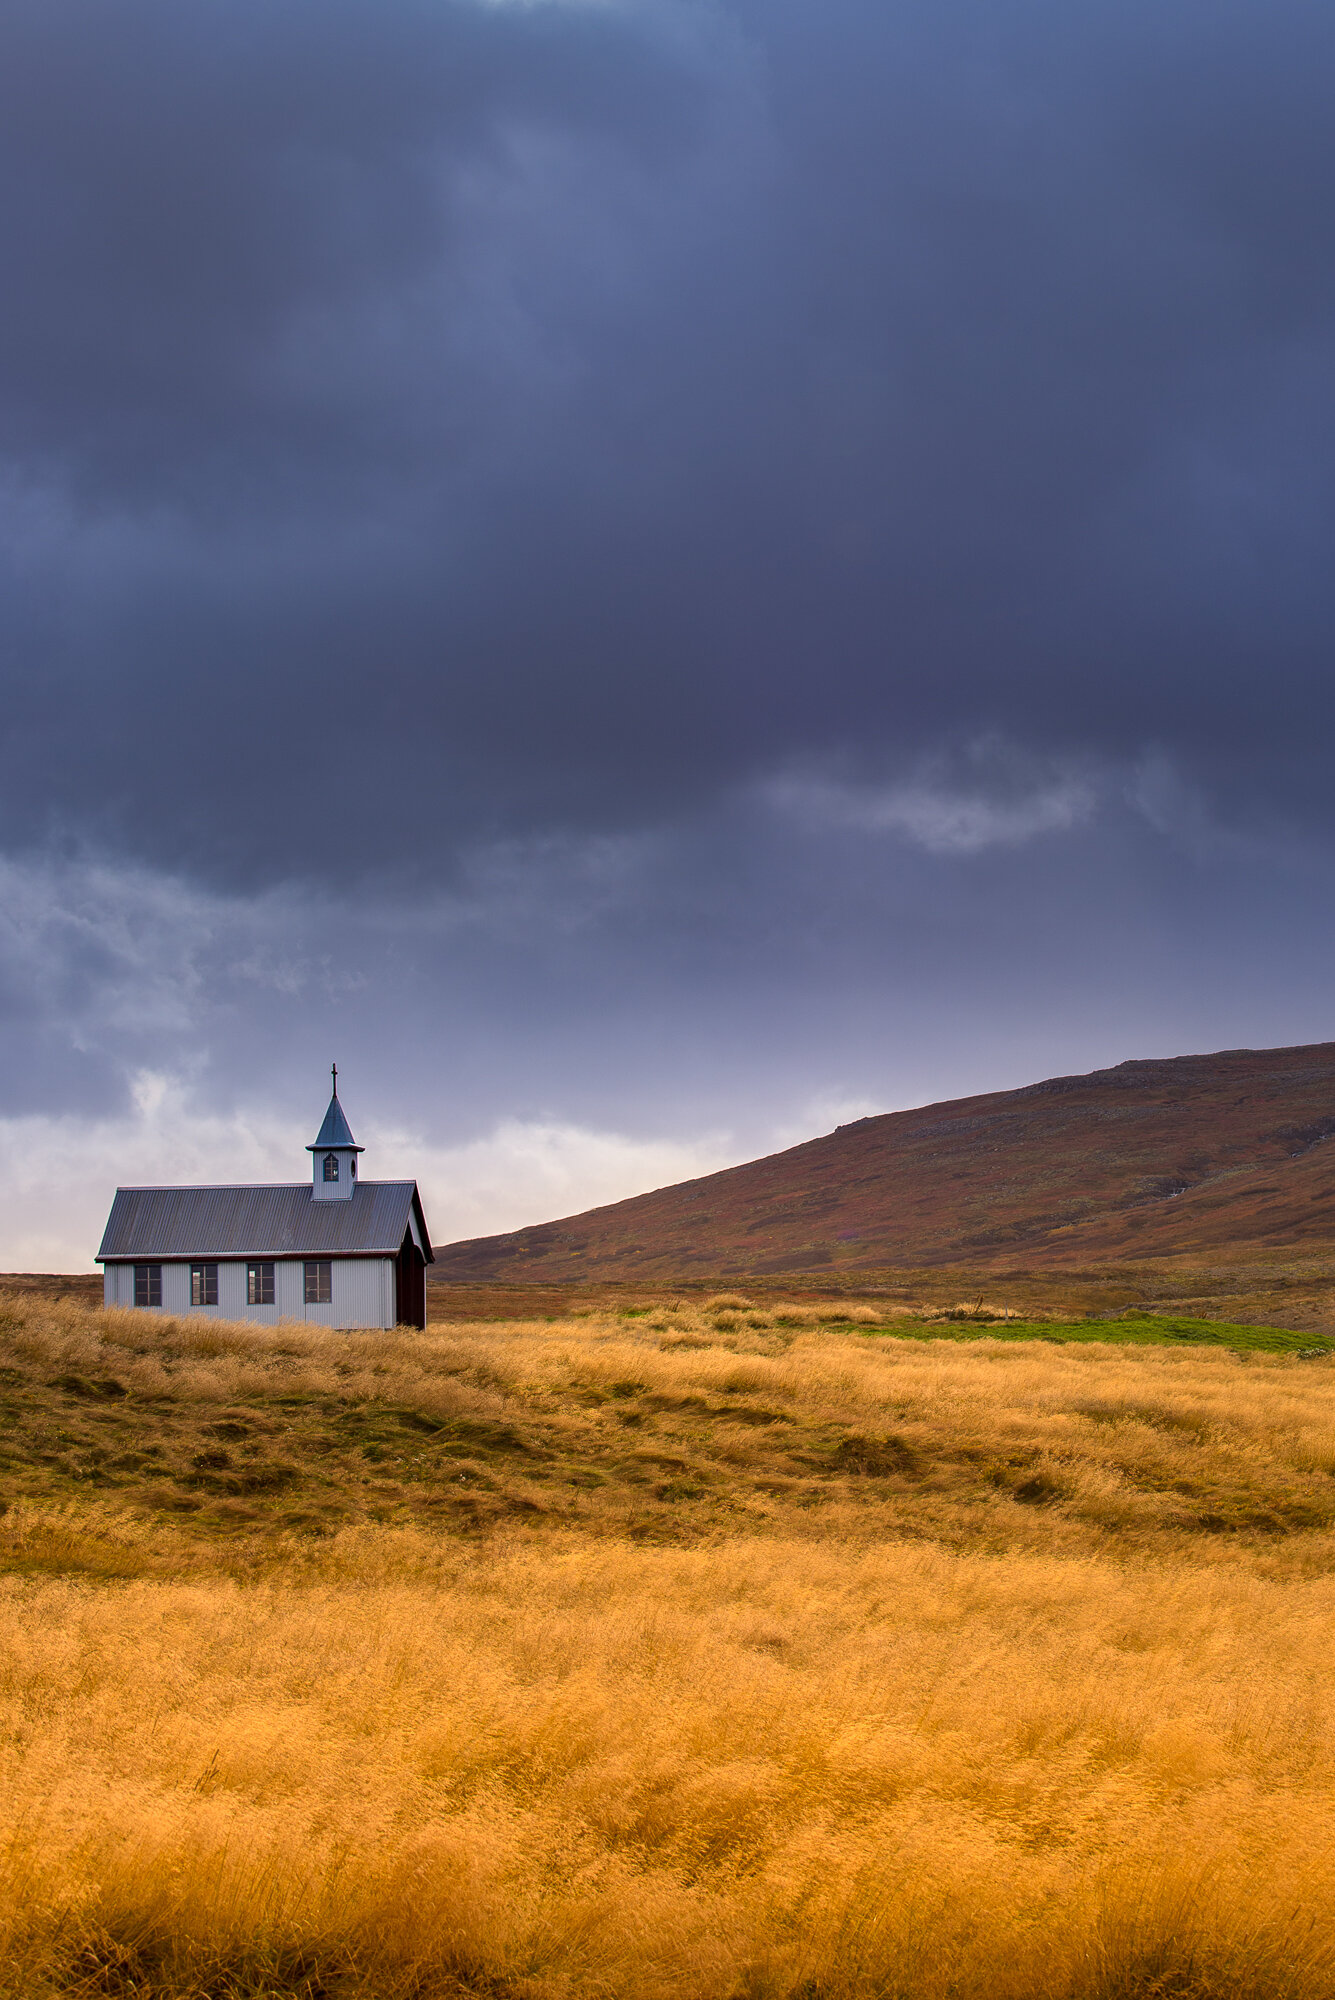 Iceland Landscape Photography: 'Golden Fields of Glory'